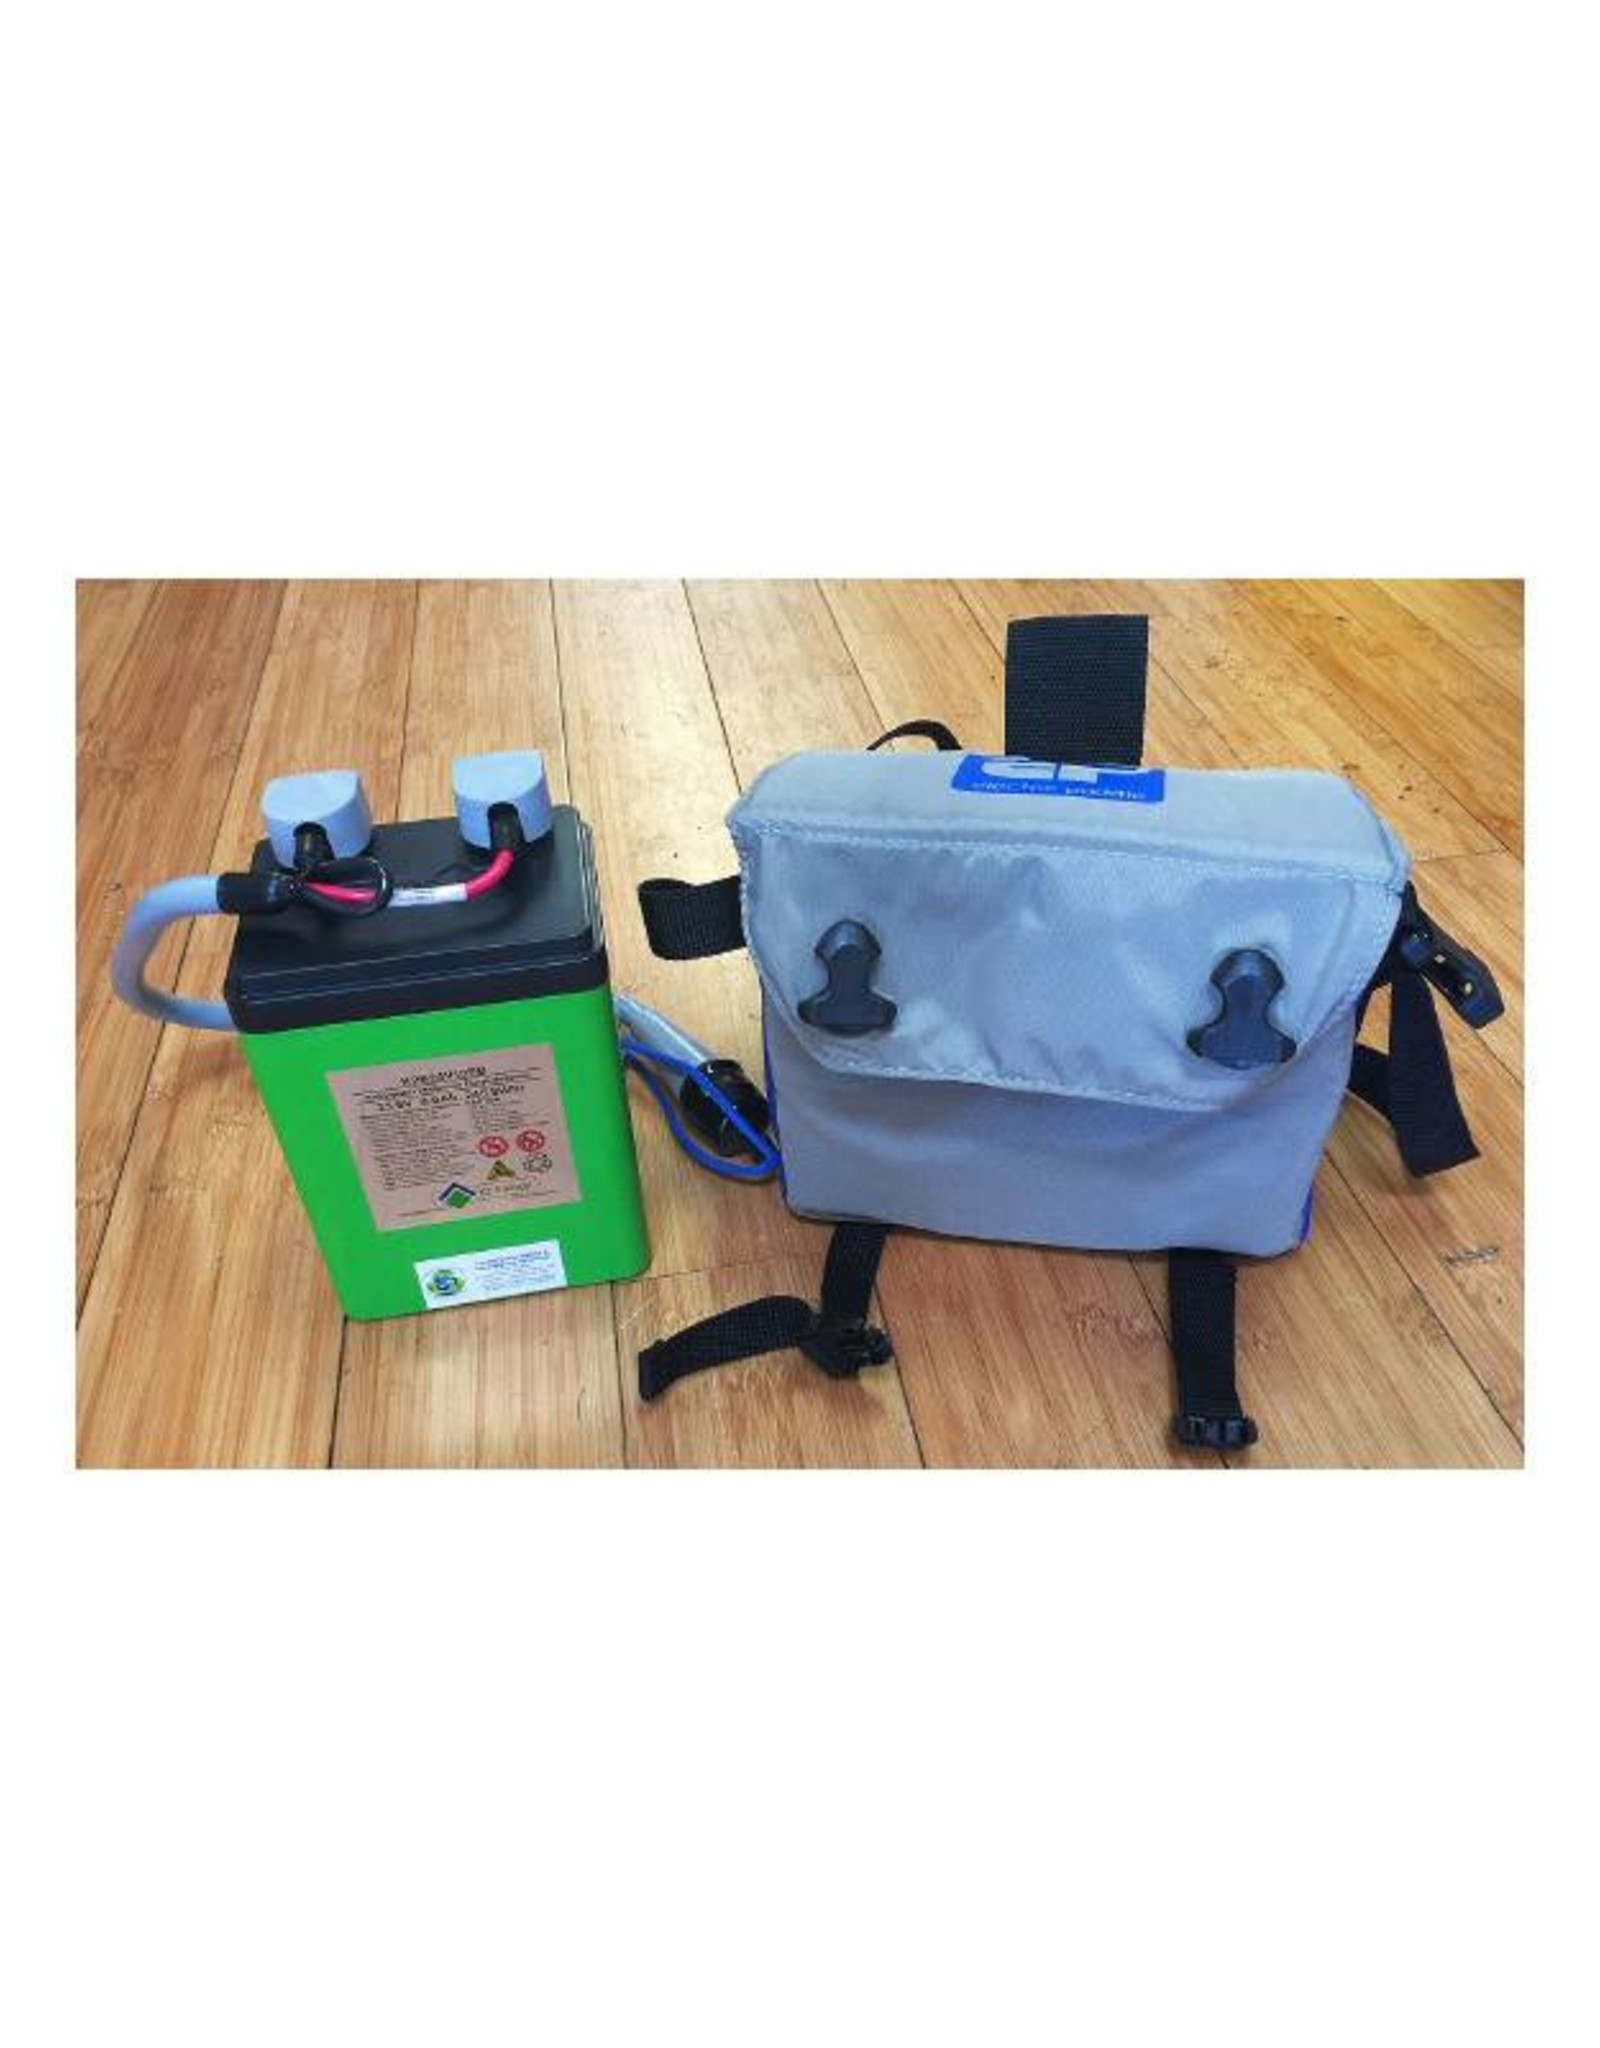 EP Carry EP Carry Battery Pack - 24 v Lithium Iron Phosphate 9.6 Ah with bag